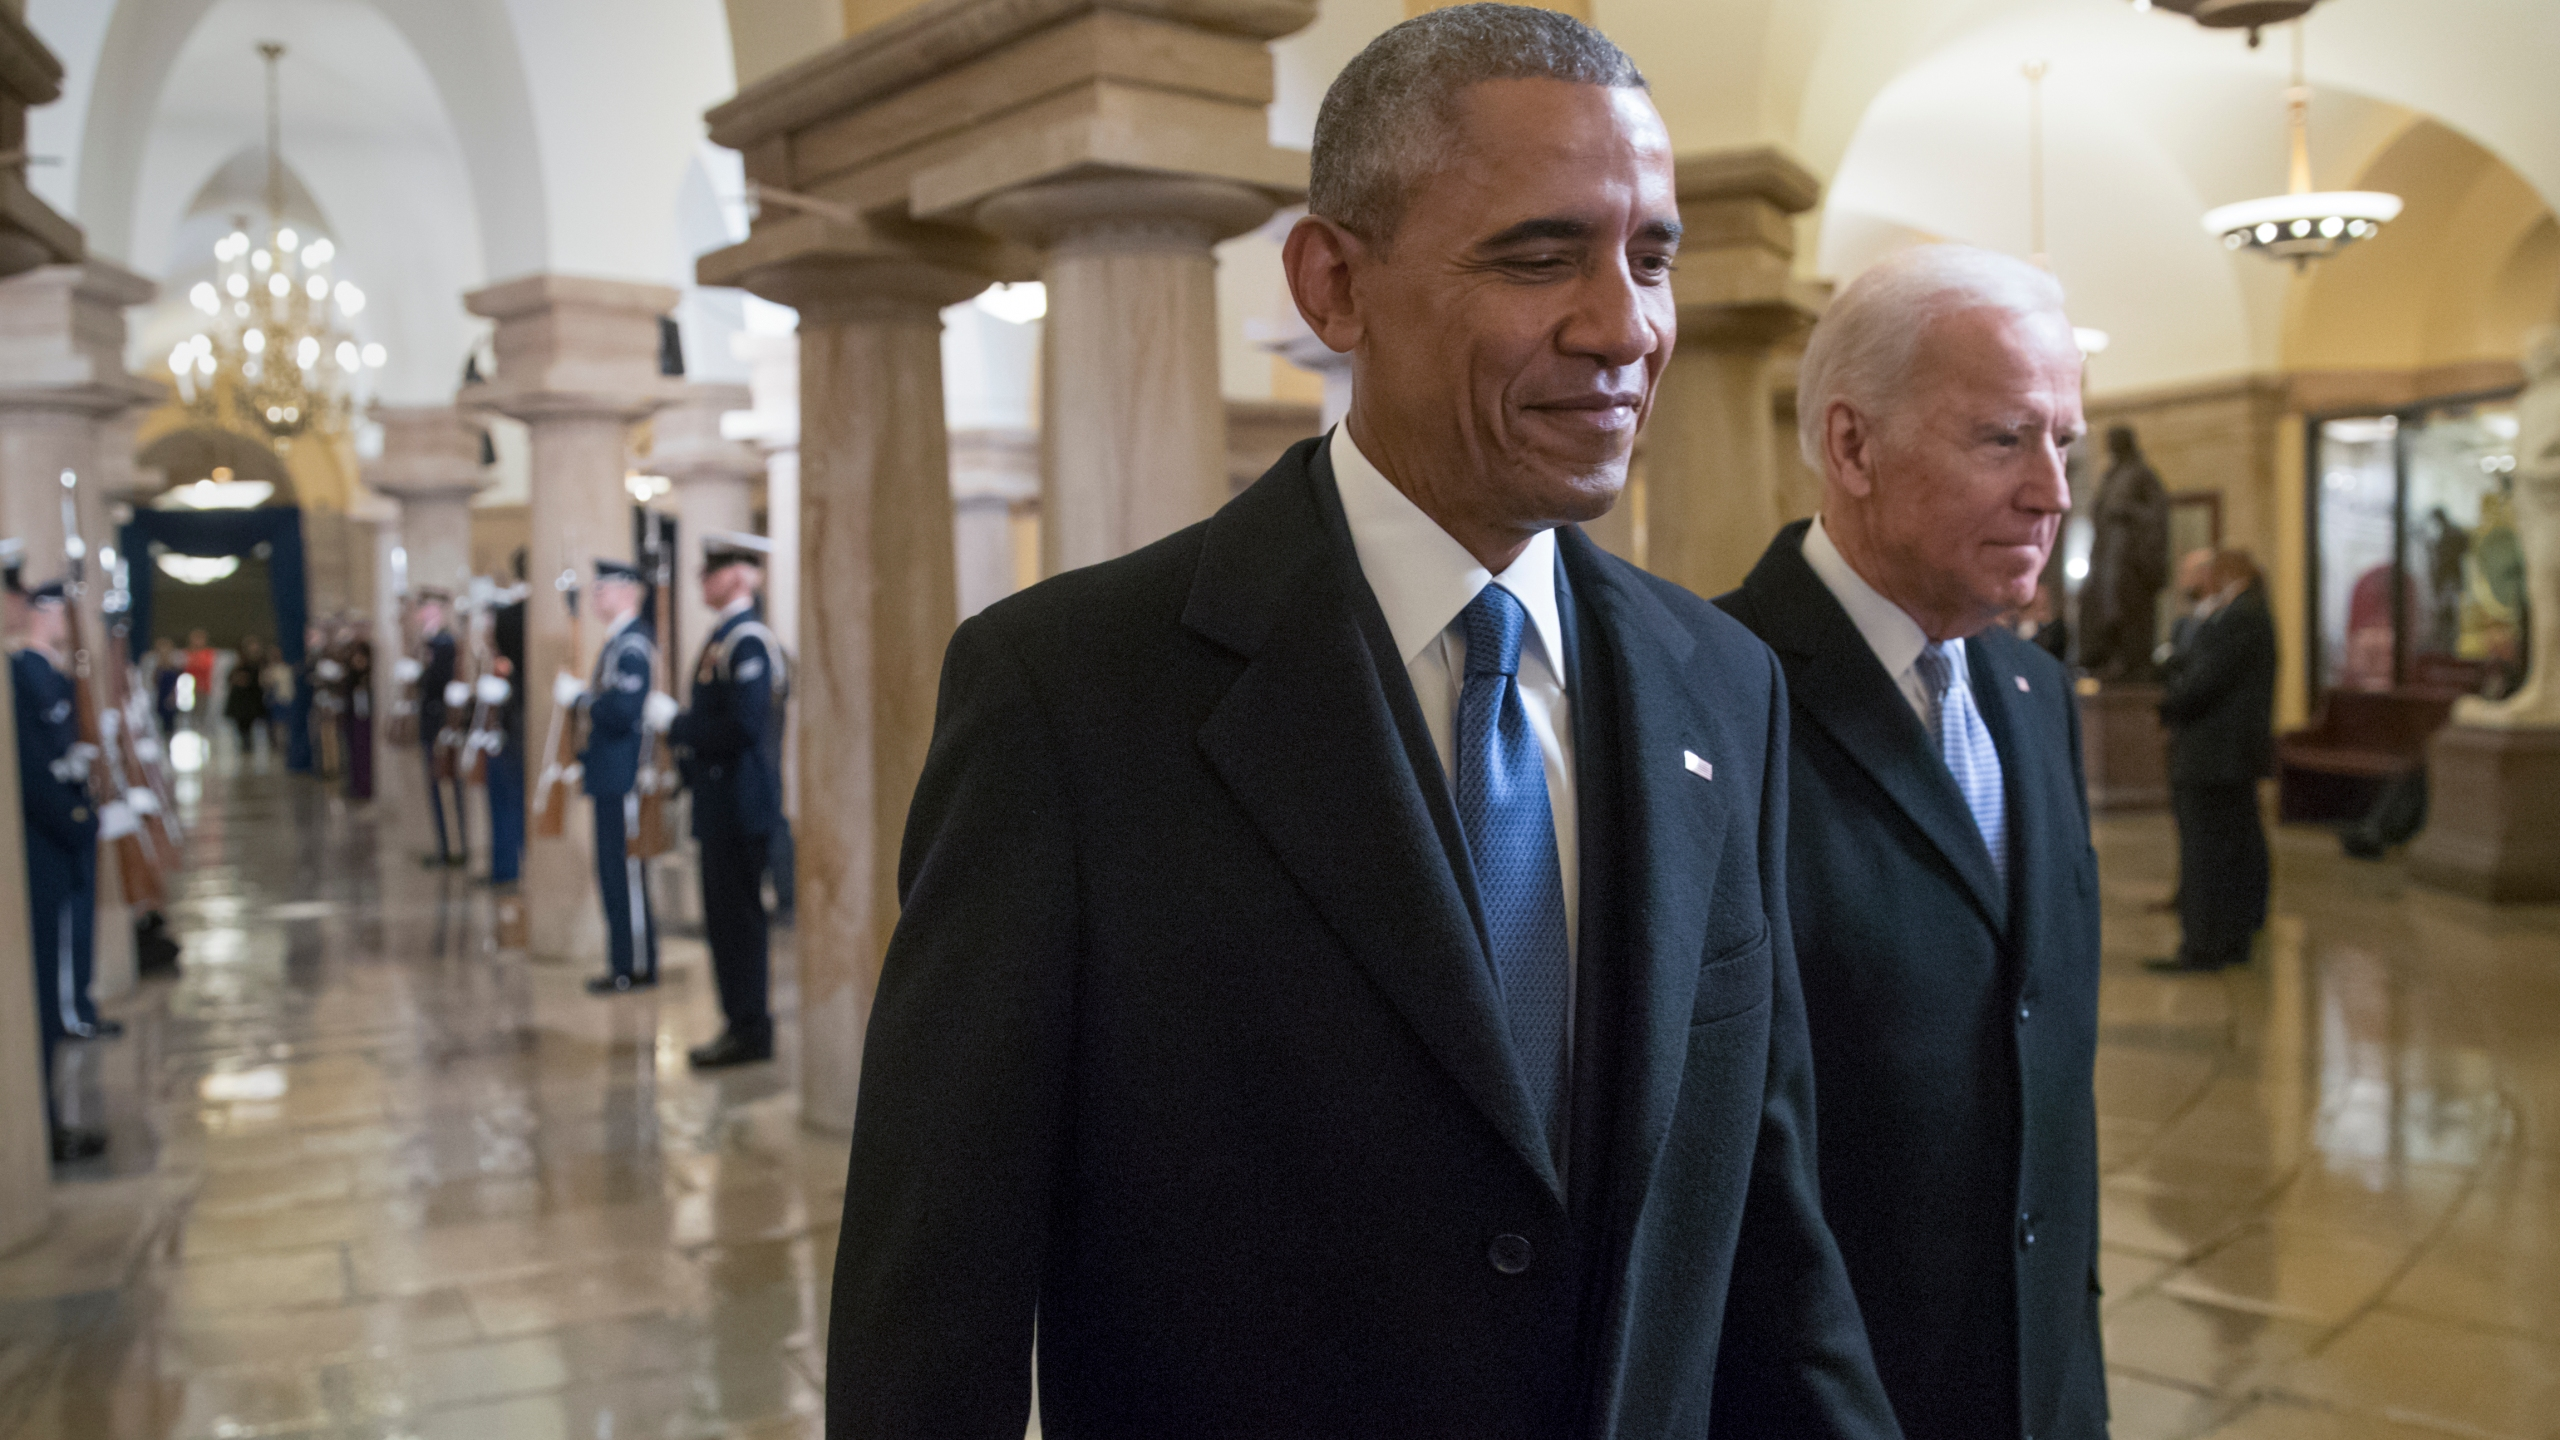 President Barack Obama and Vice President Joe Biden walk through the Crypt of the Capitol for Donald Trump's inauguration ceremony, in Washington, January 20, 2017. (J. Scott Applewhite - Pool/Getty Images)